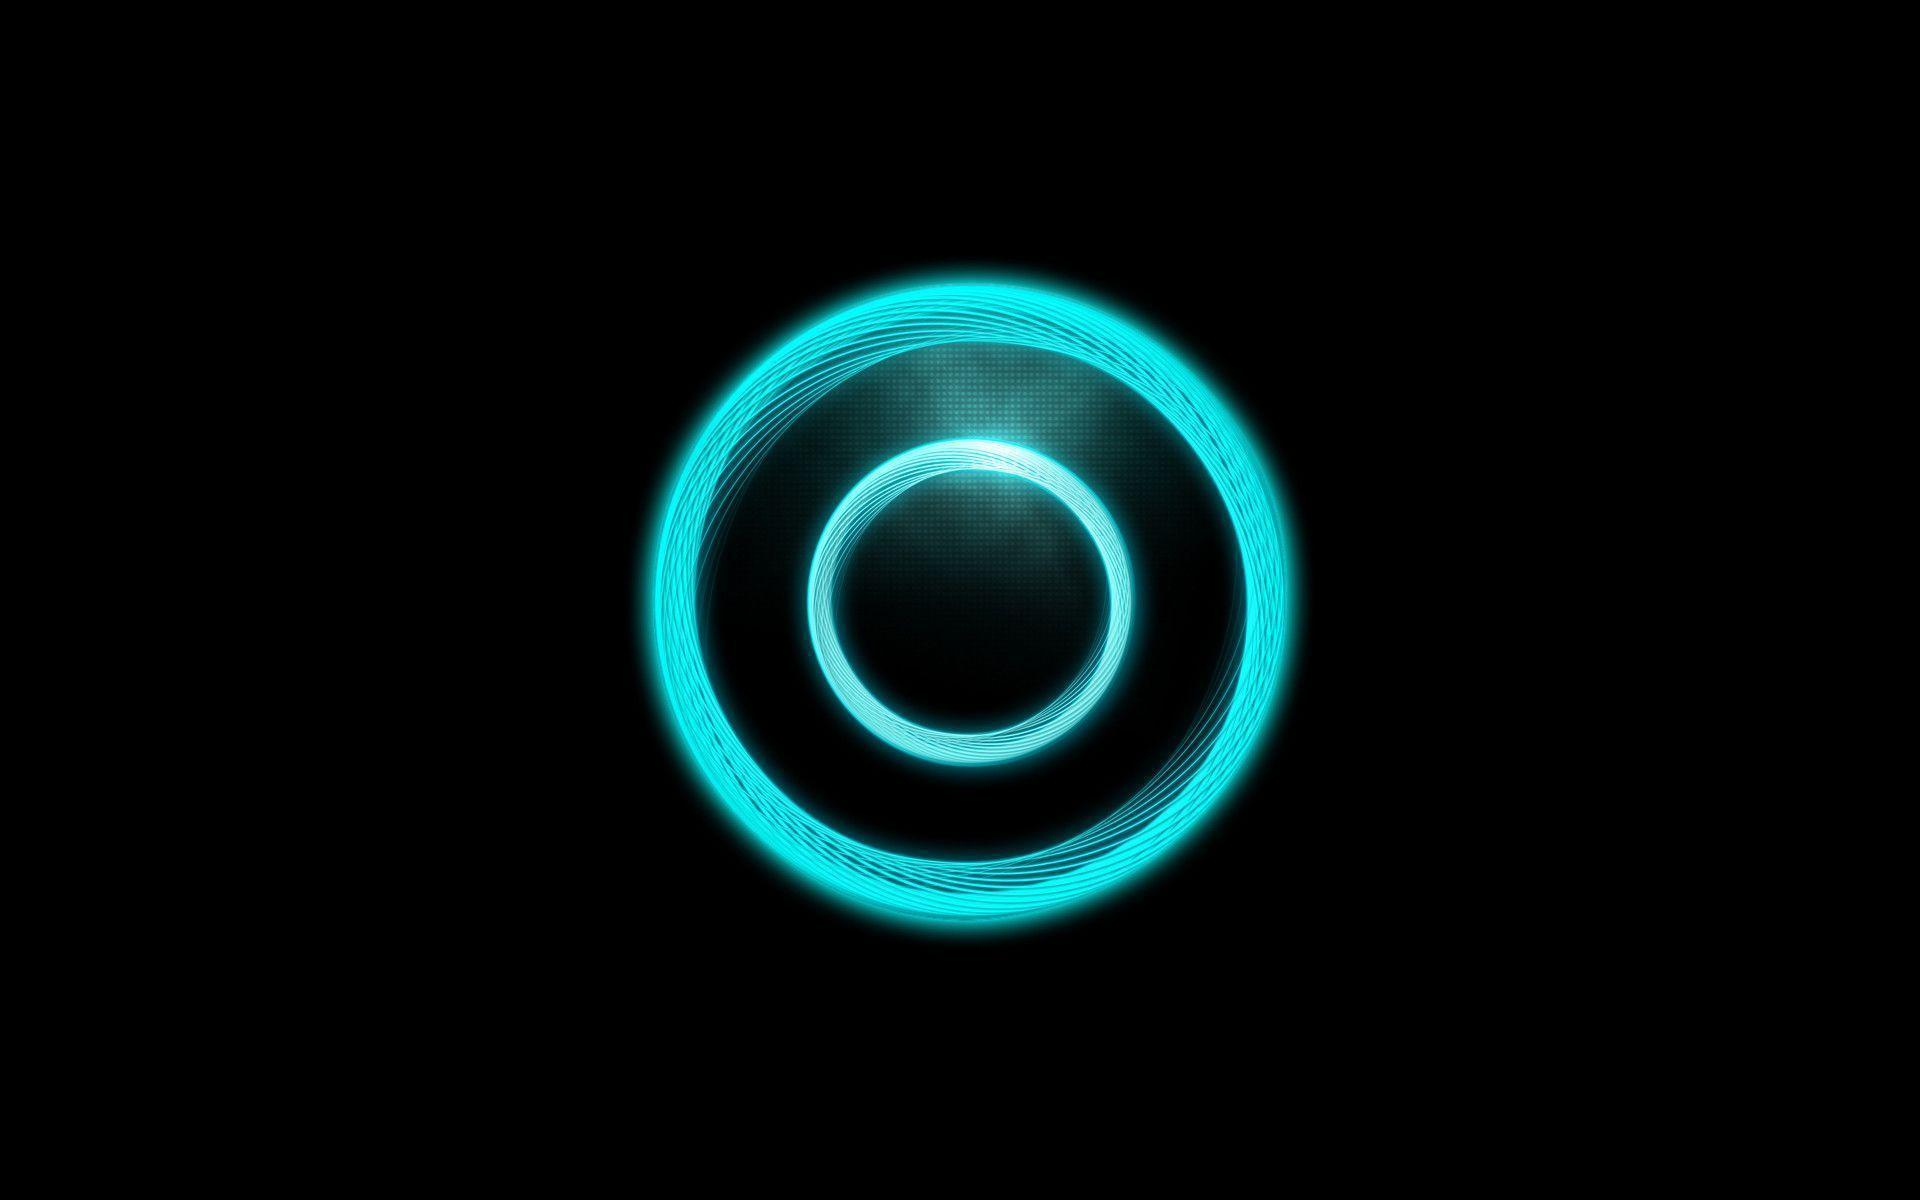 tron desktop wallpapers - wallpaper cave